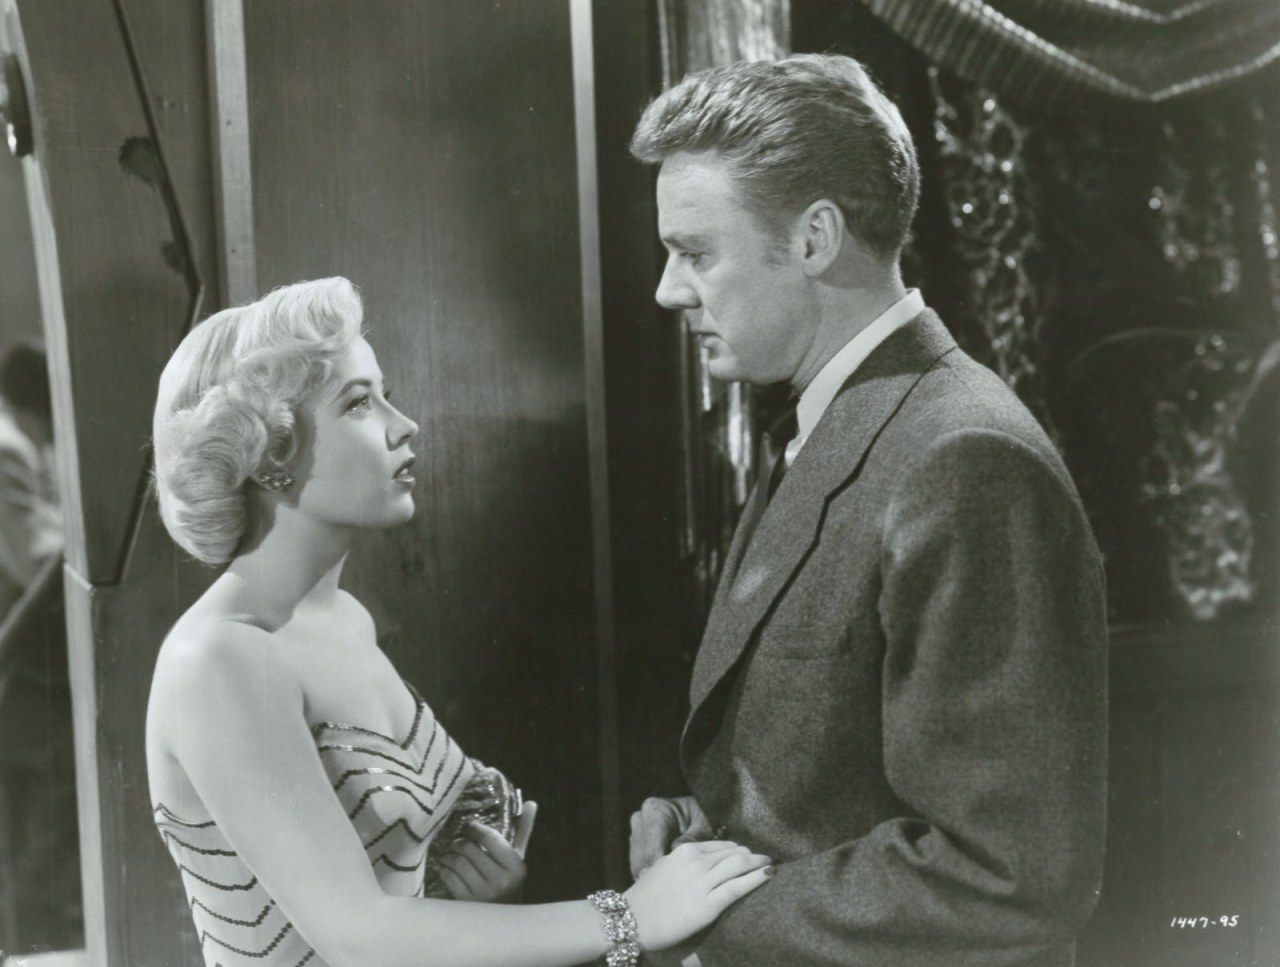 Valentina Cortese (born 1923) Valentina Cortese (born 1923) new foto